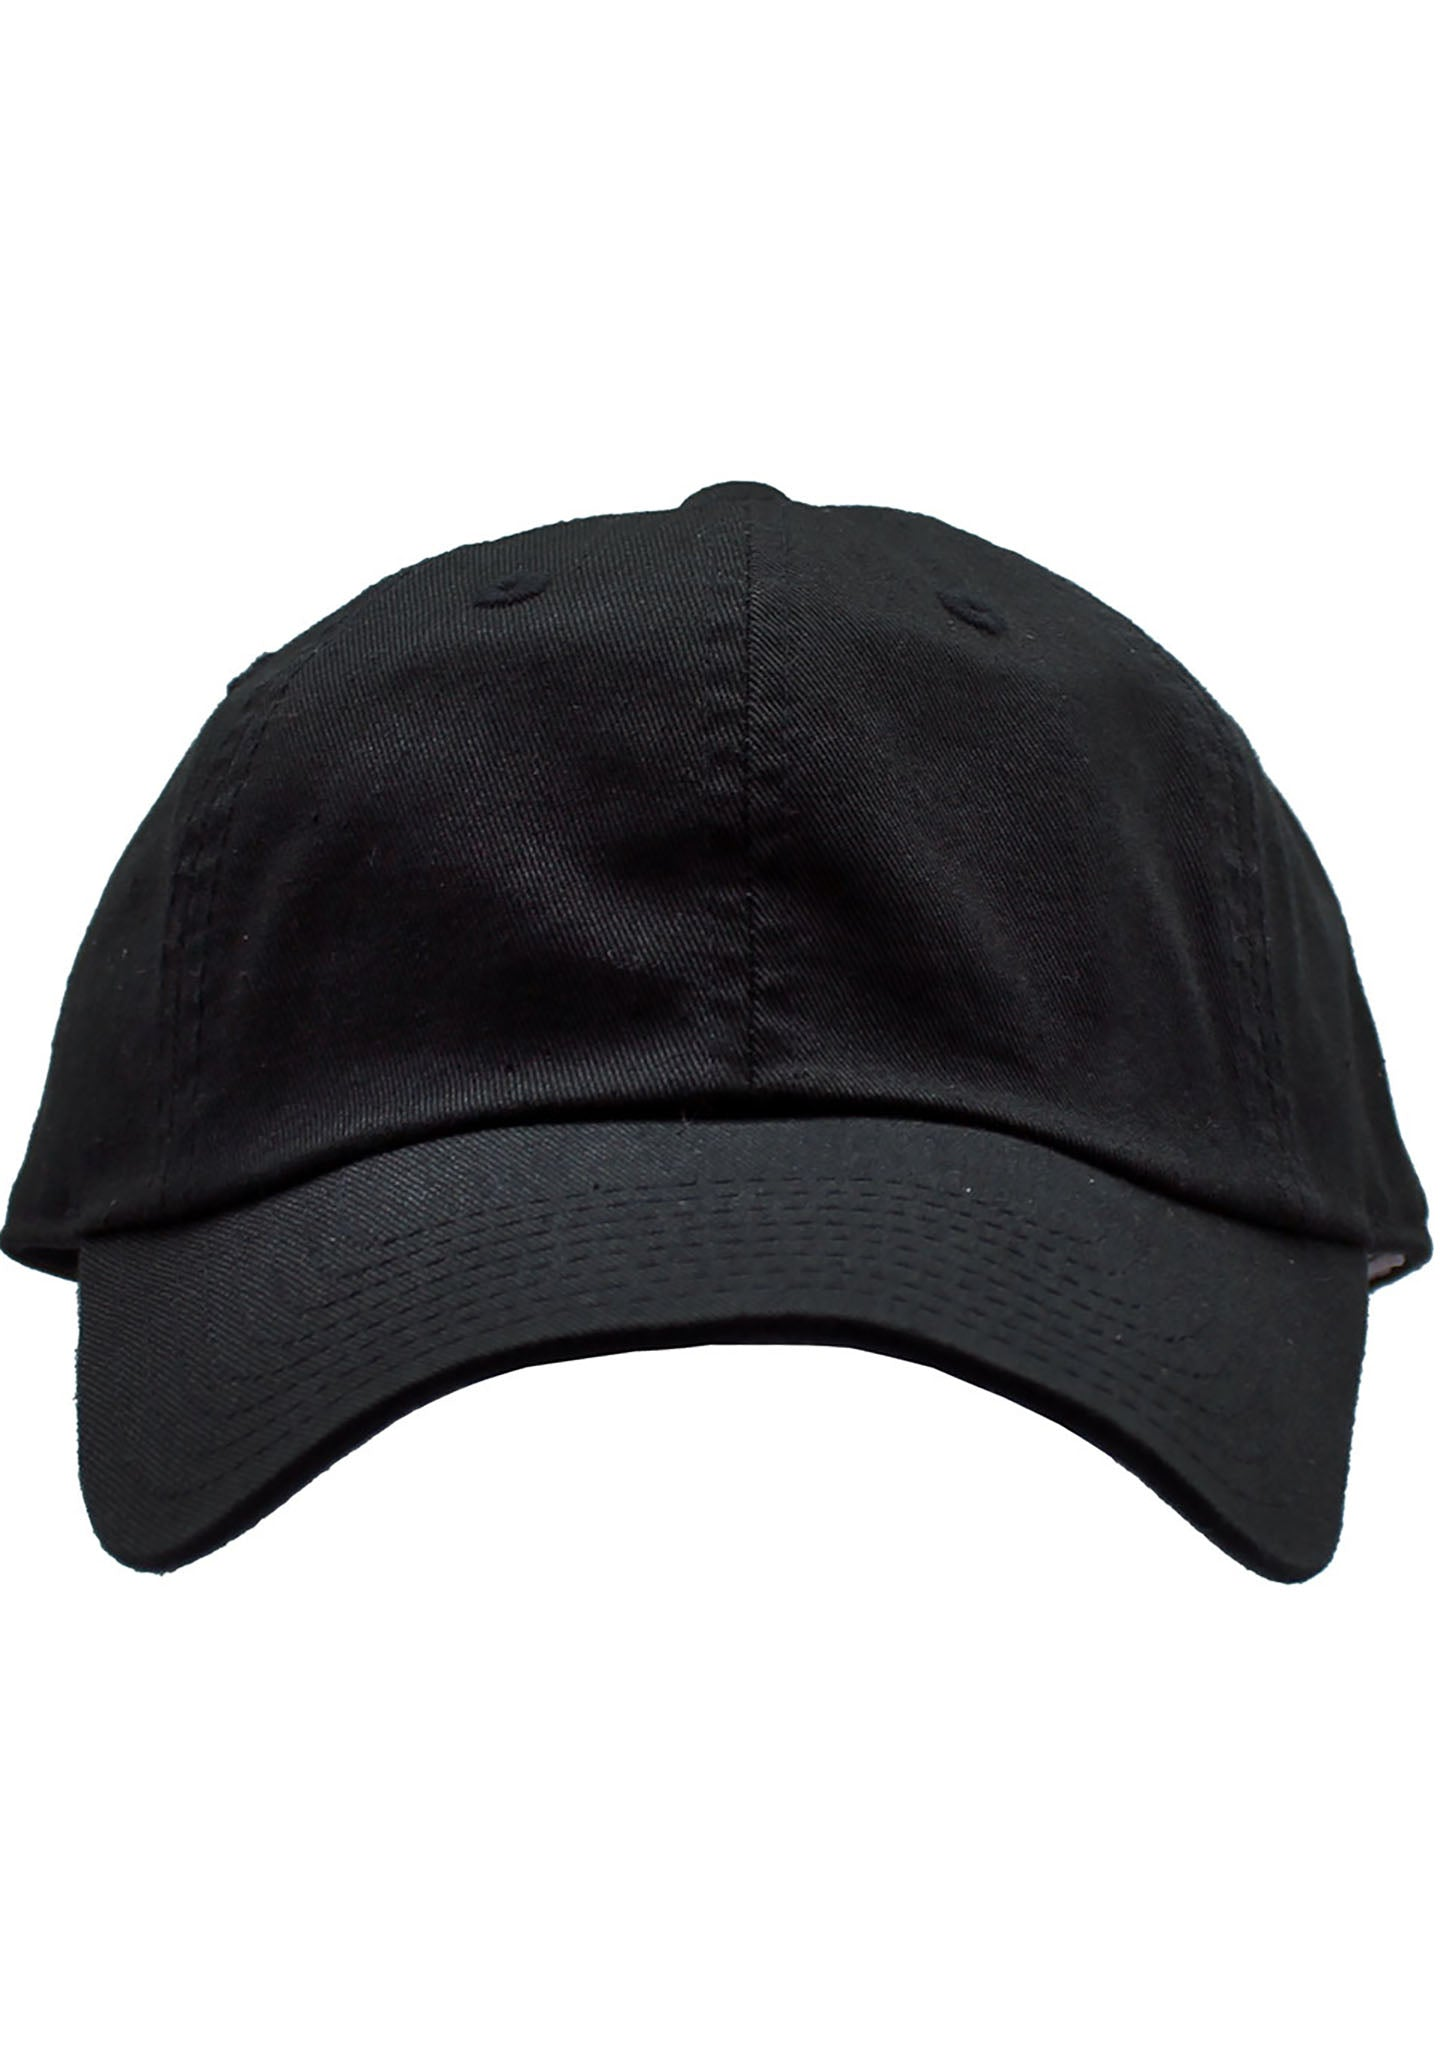 American Needle Washed Slouch Raglan Hat in Black